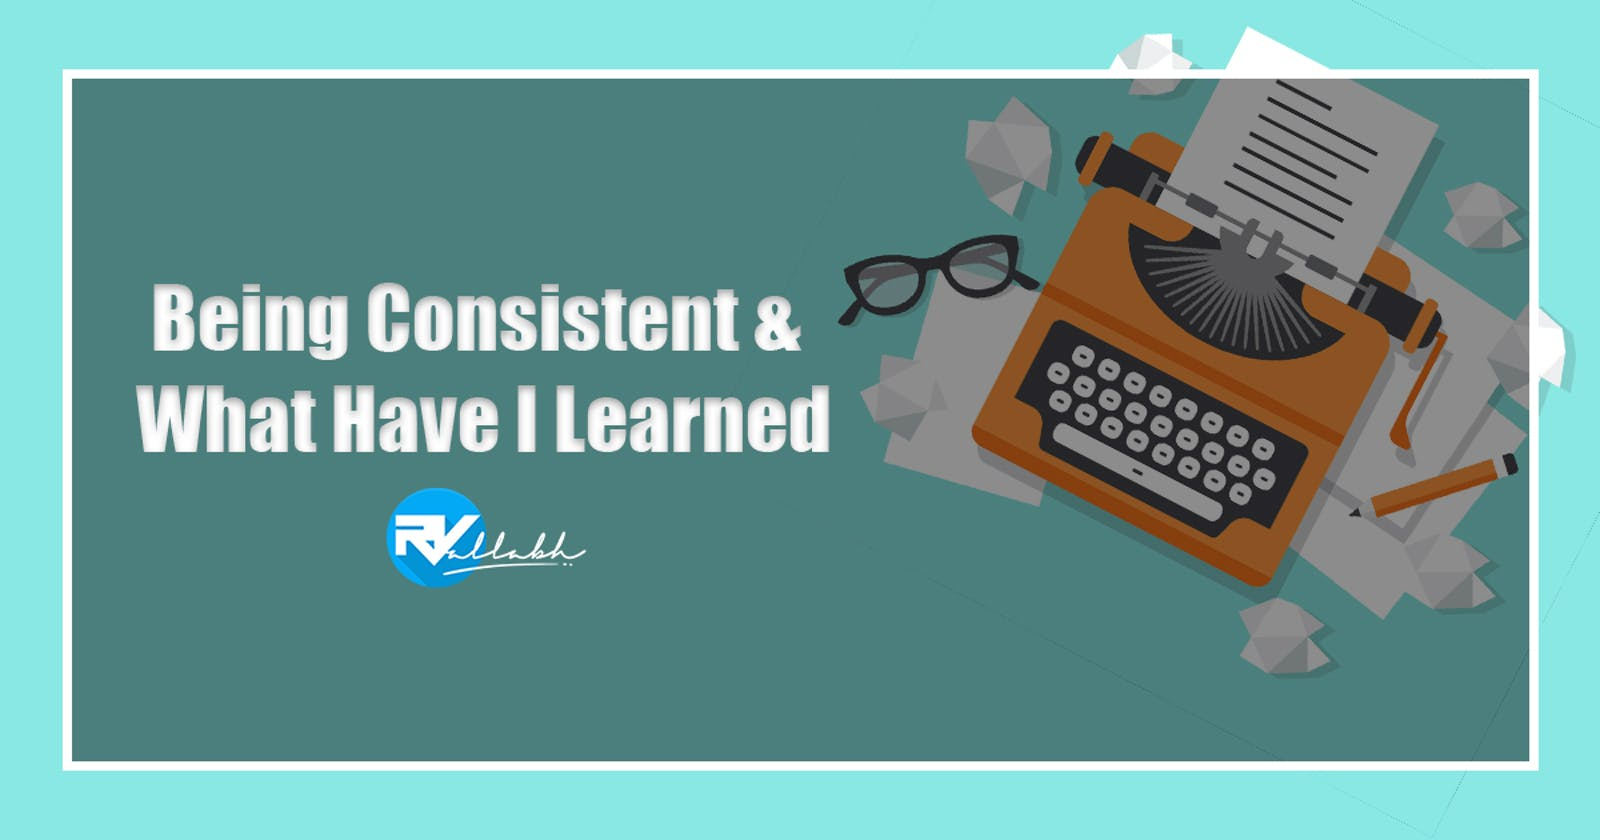 Being Consistent & What Have I Learned